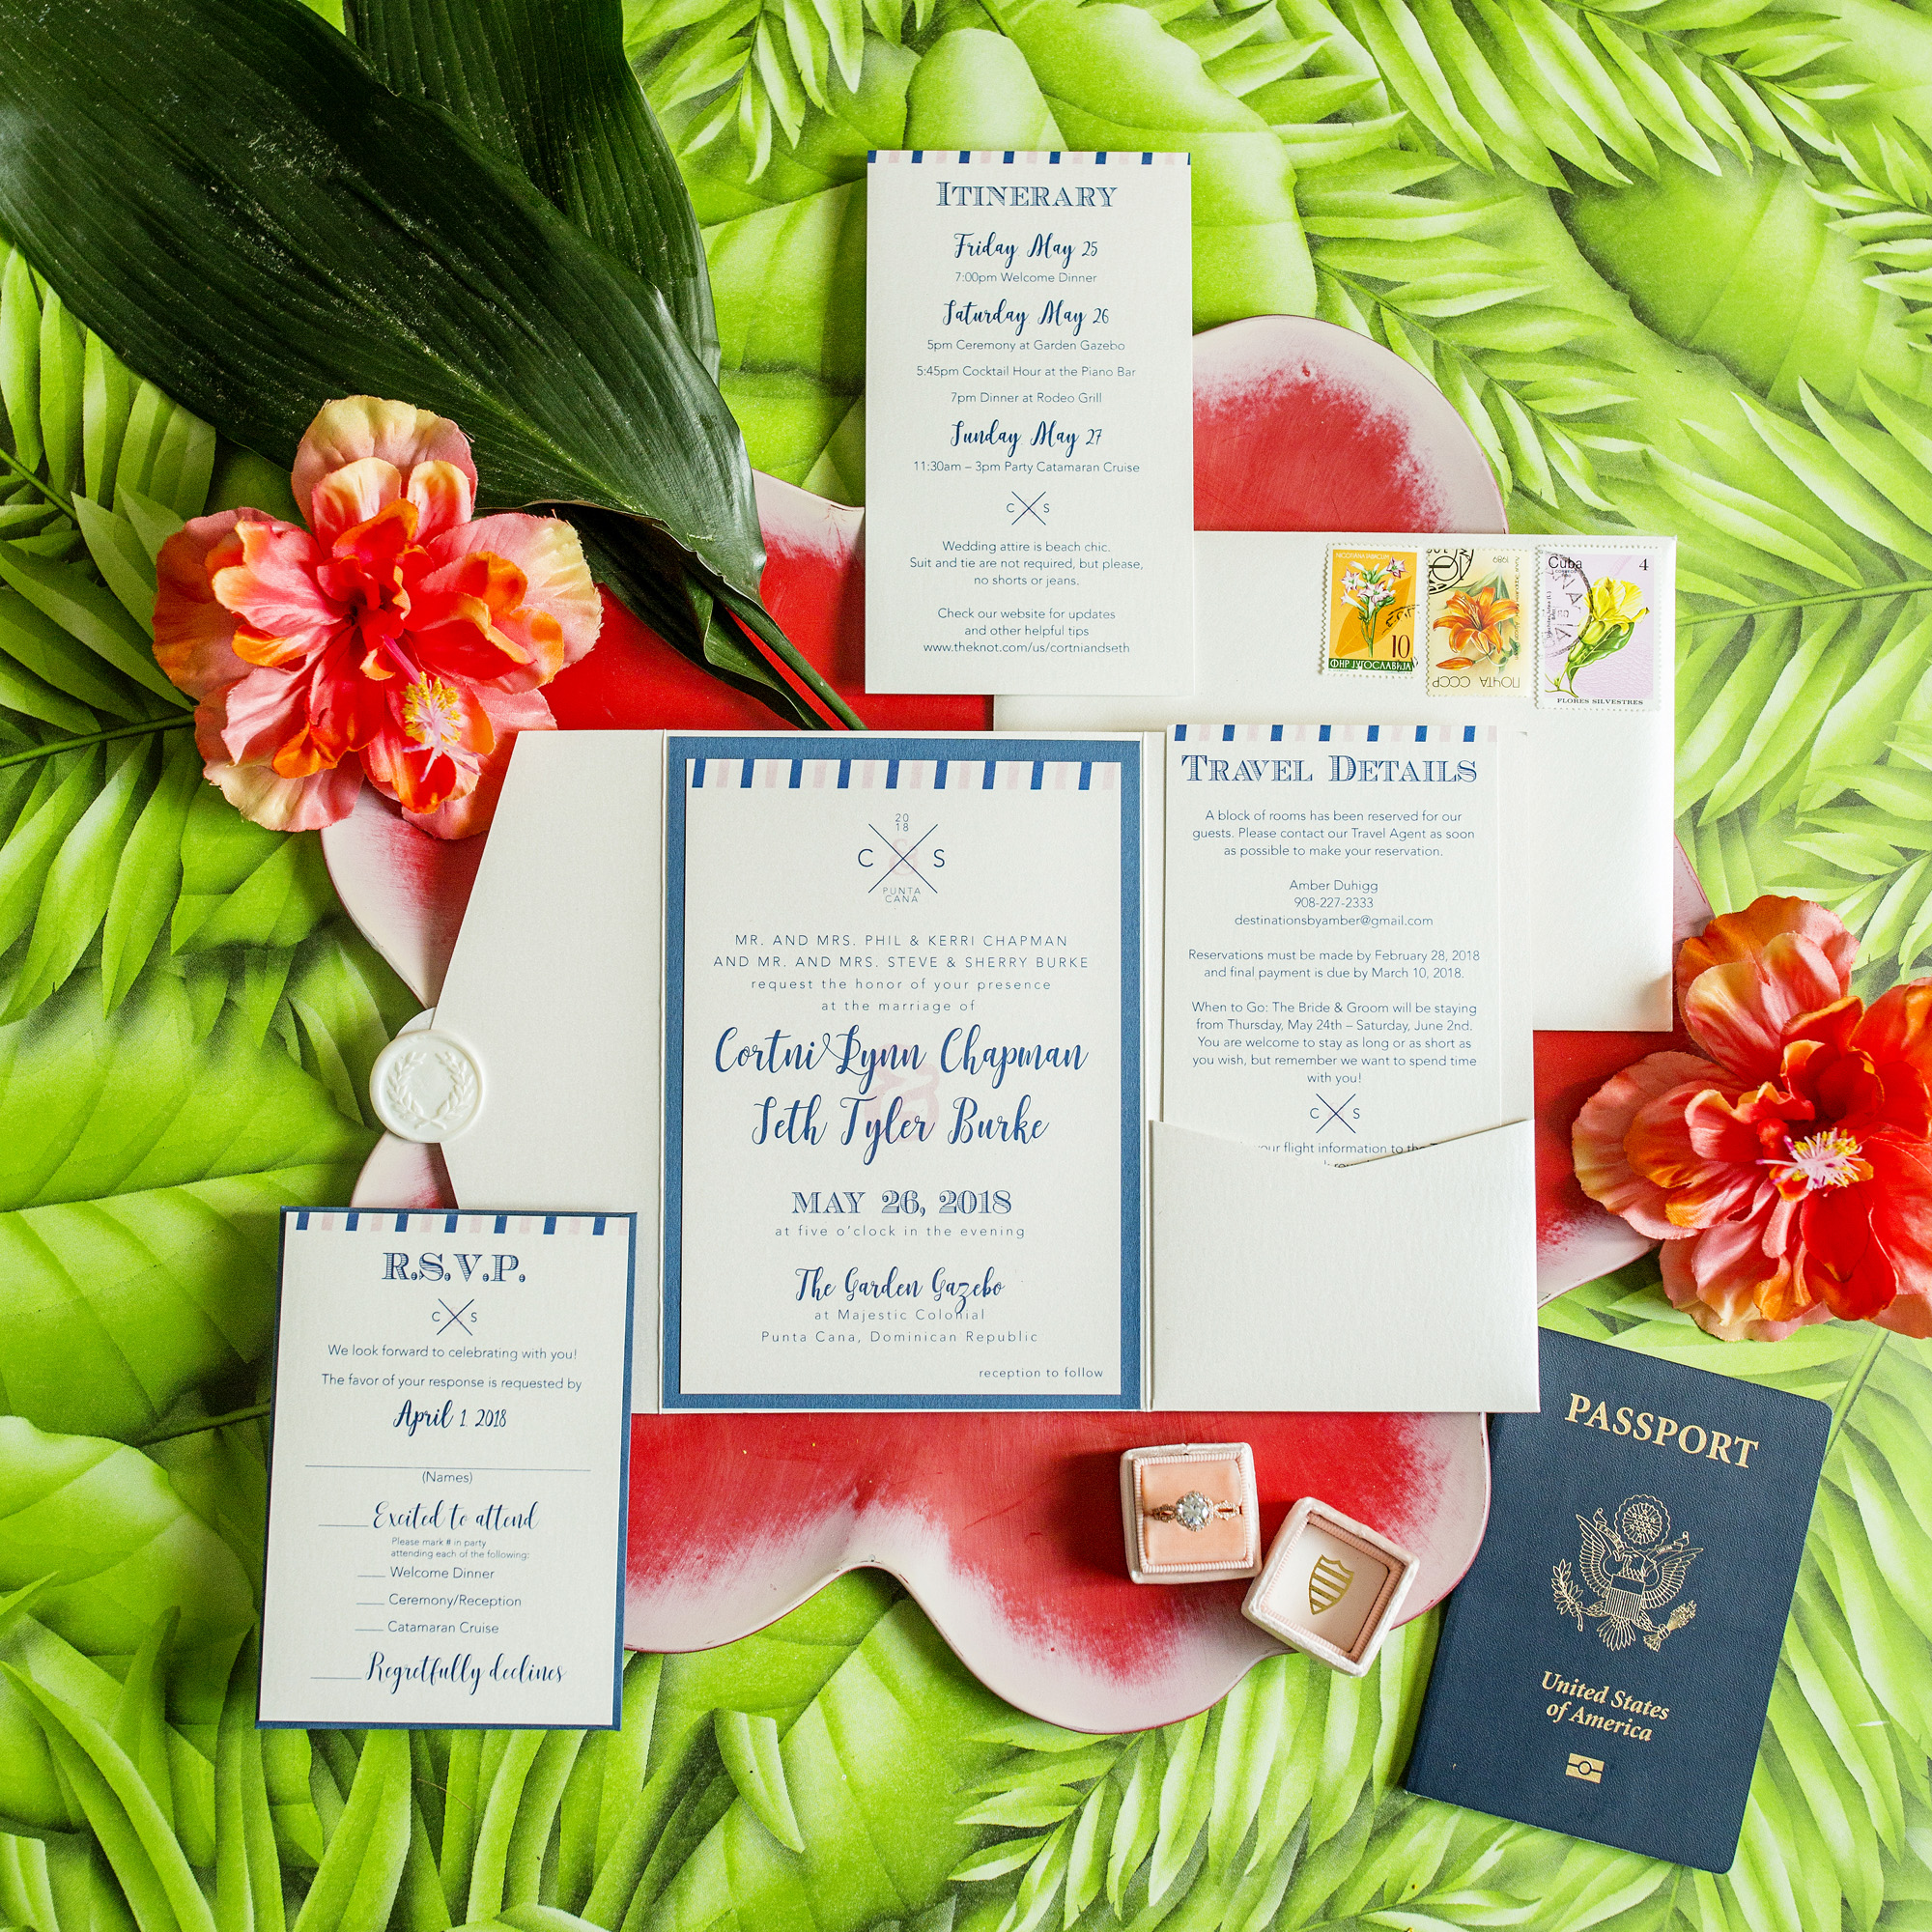 Seriously_Sabrina_Photography_Commercial_Simply_Done_Invites_2019_March_085